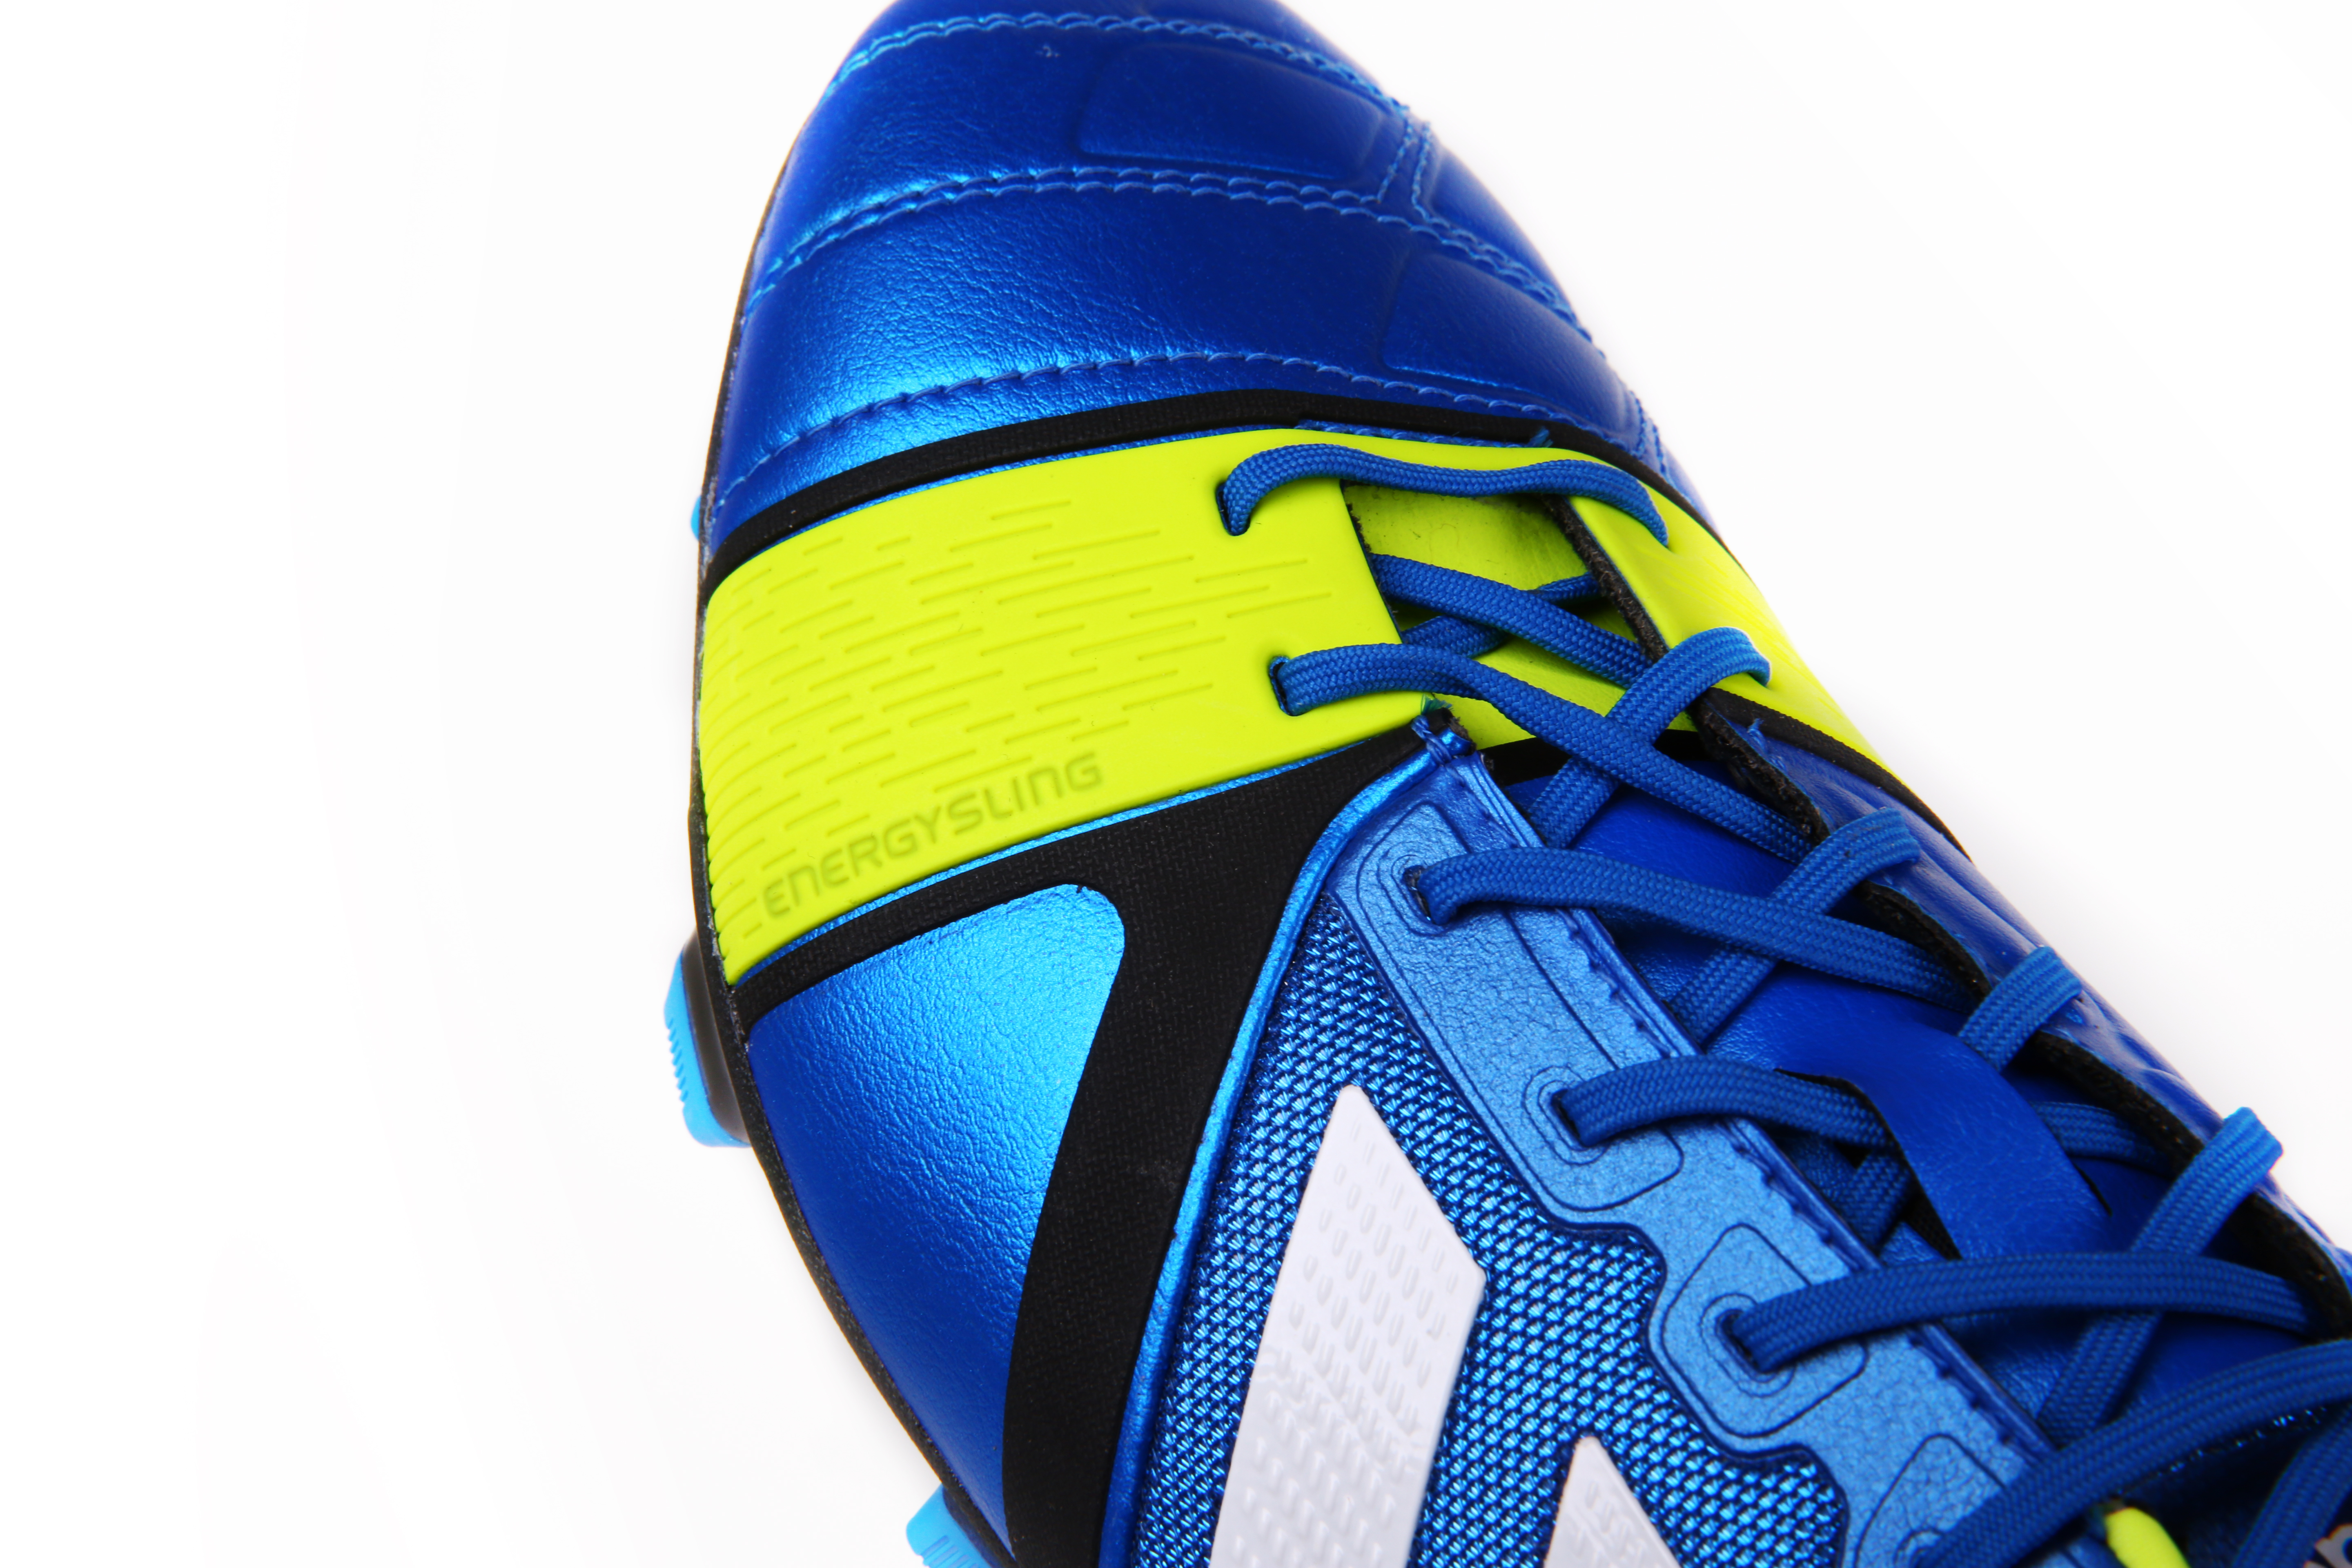 Nitrocharge_Boot_Photography_onWhite_13_001